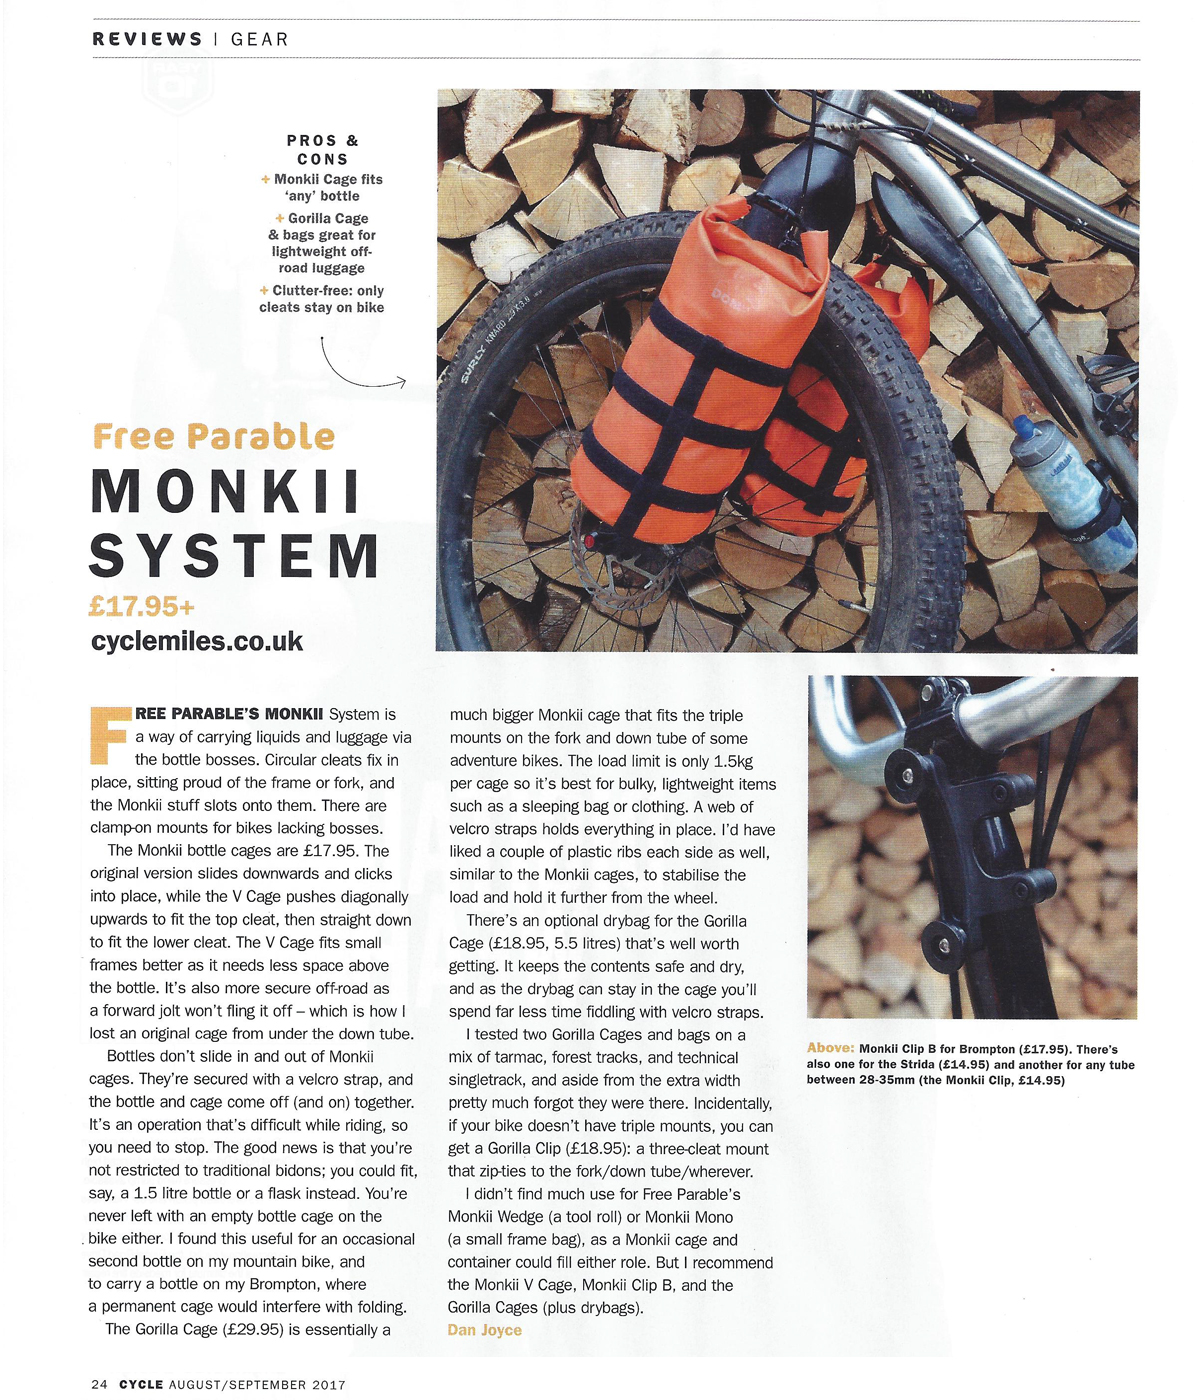 cycling-uk-monkii-system-review